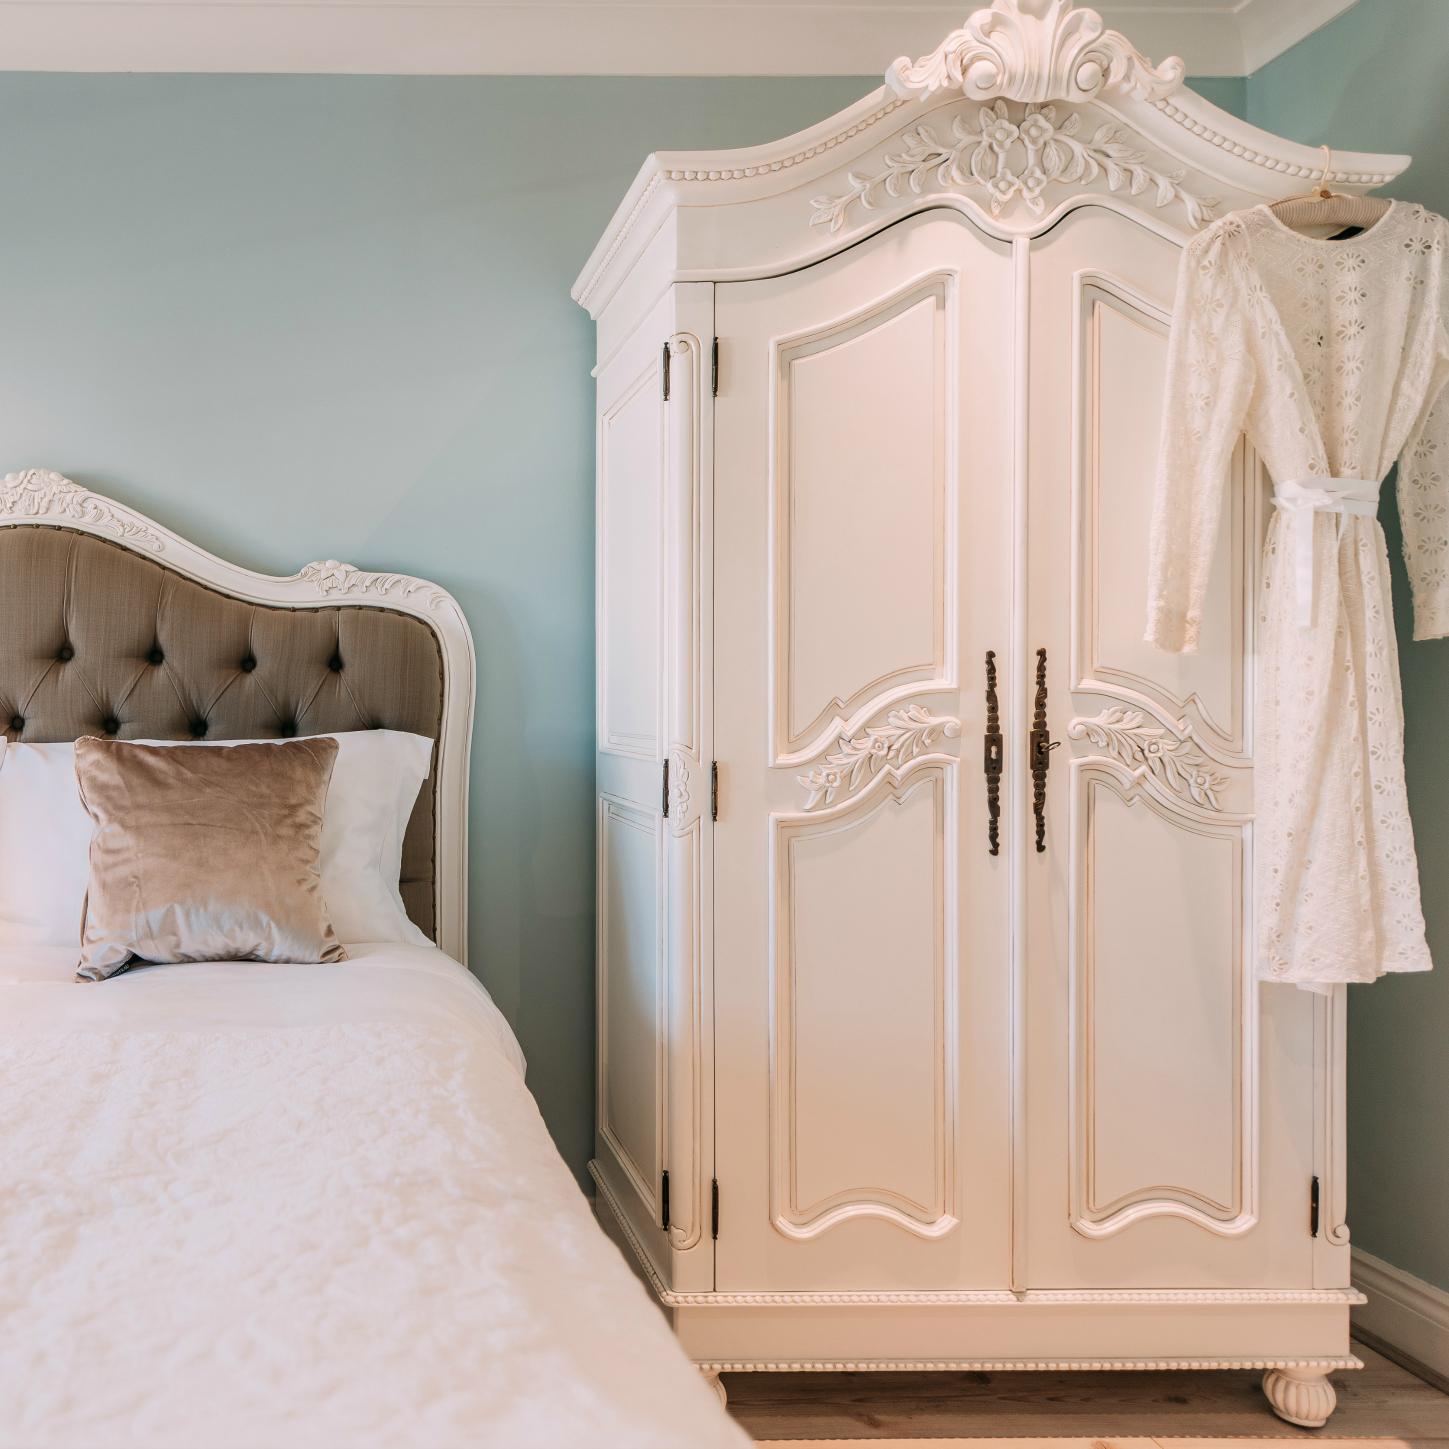 Free Standing Hanging Closet | Bedroom Furniture with Armoire | Free Standing Closet Wardrobe